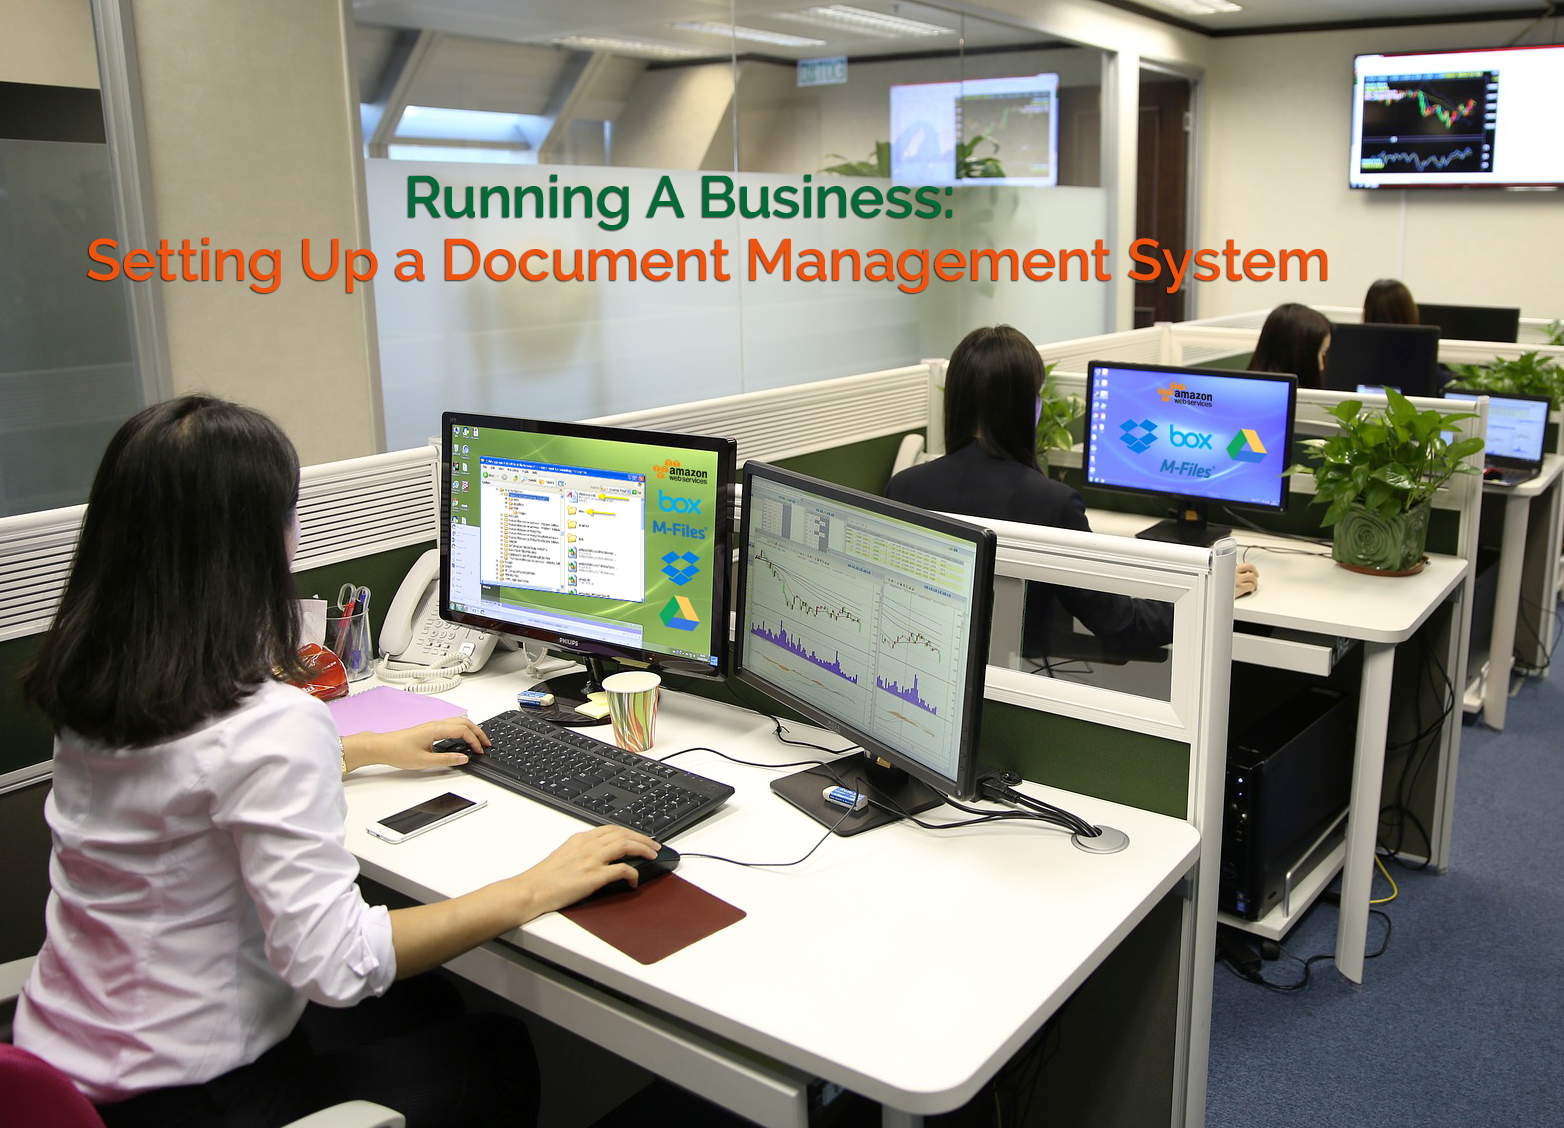 Running a Business: Setting Up a Document Management System